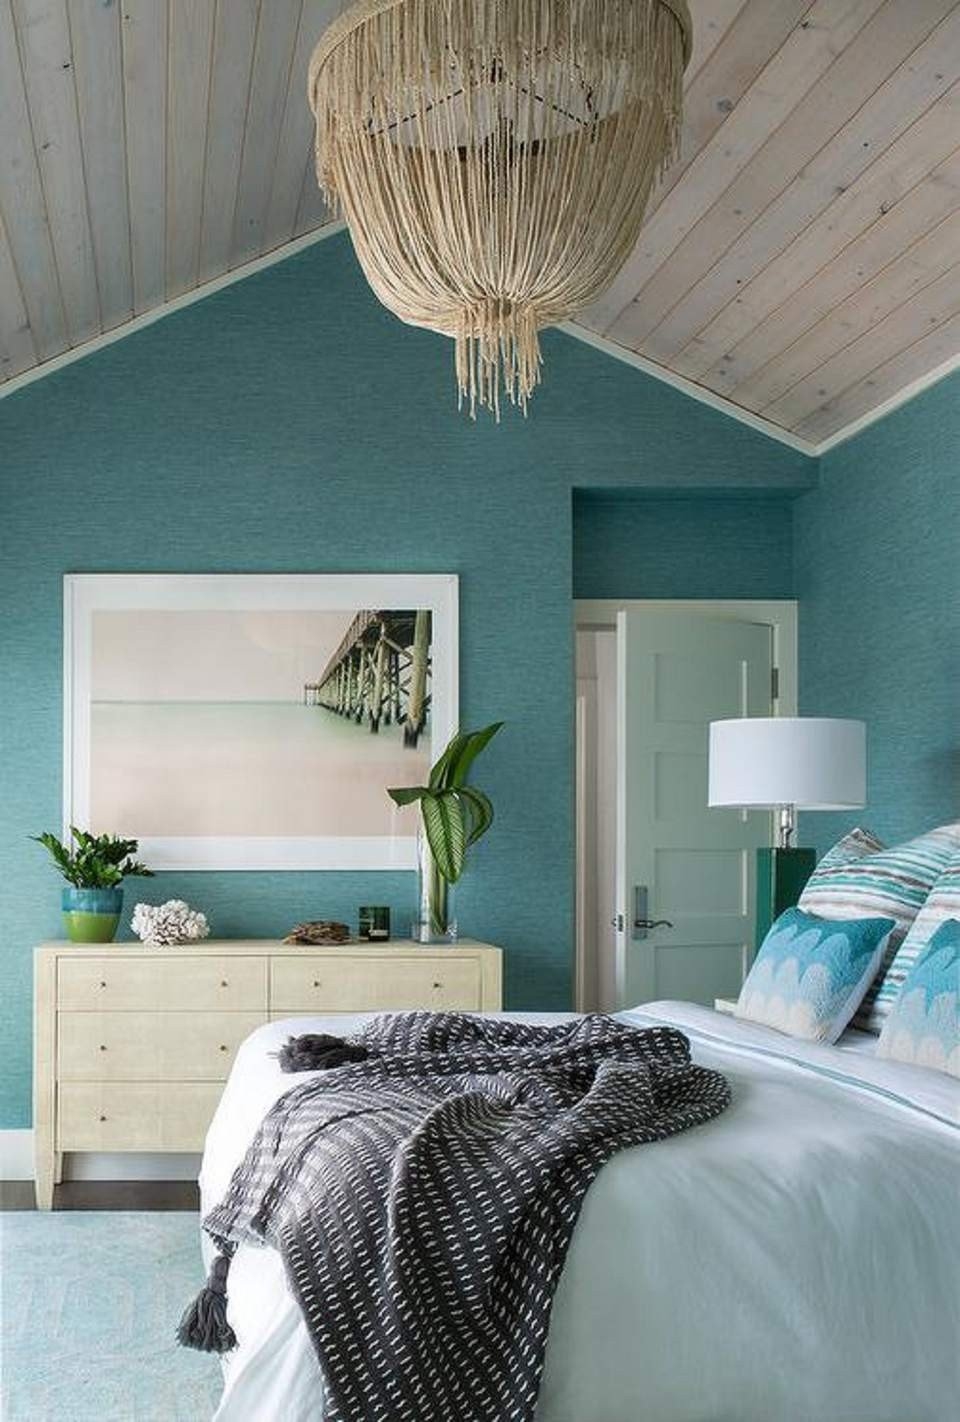 Grey and Turquoise Bedroom Ideas Fresh 50 Gorgeous Beach Bedroom Decor Ideas